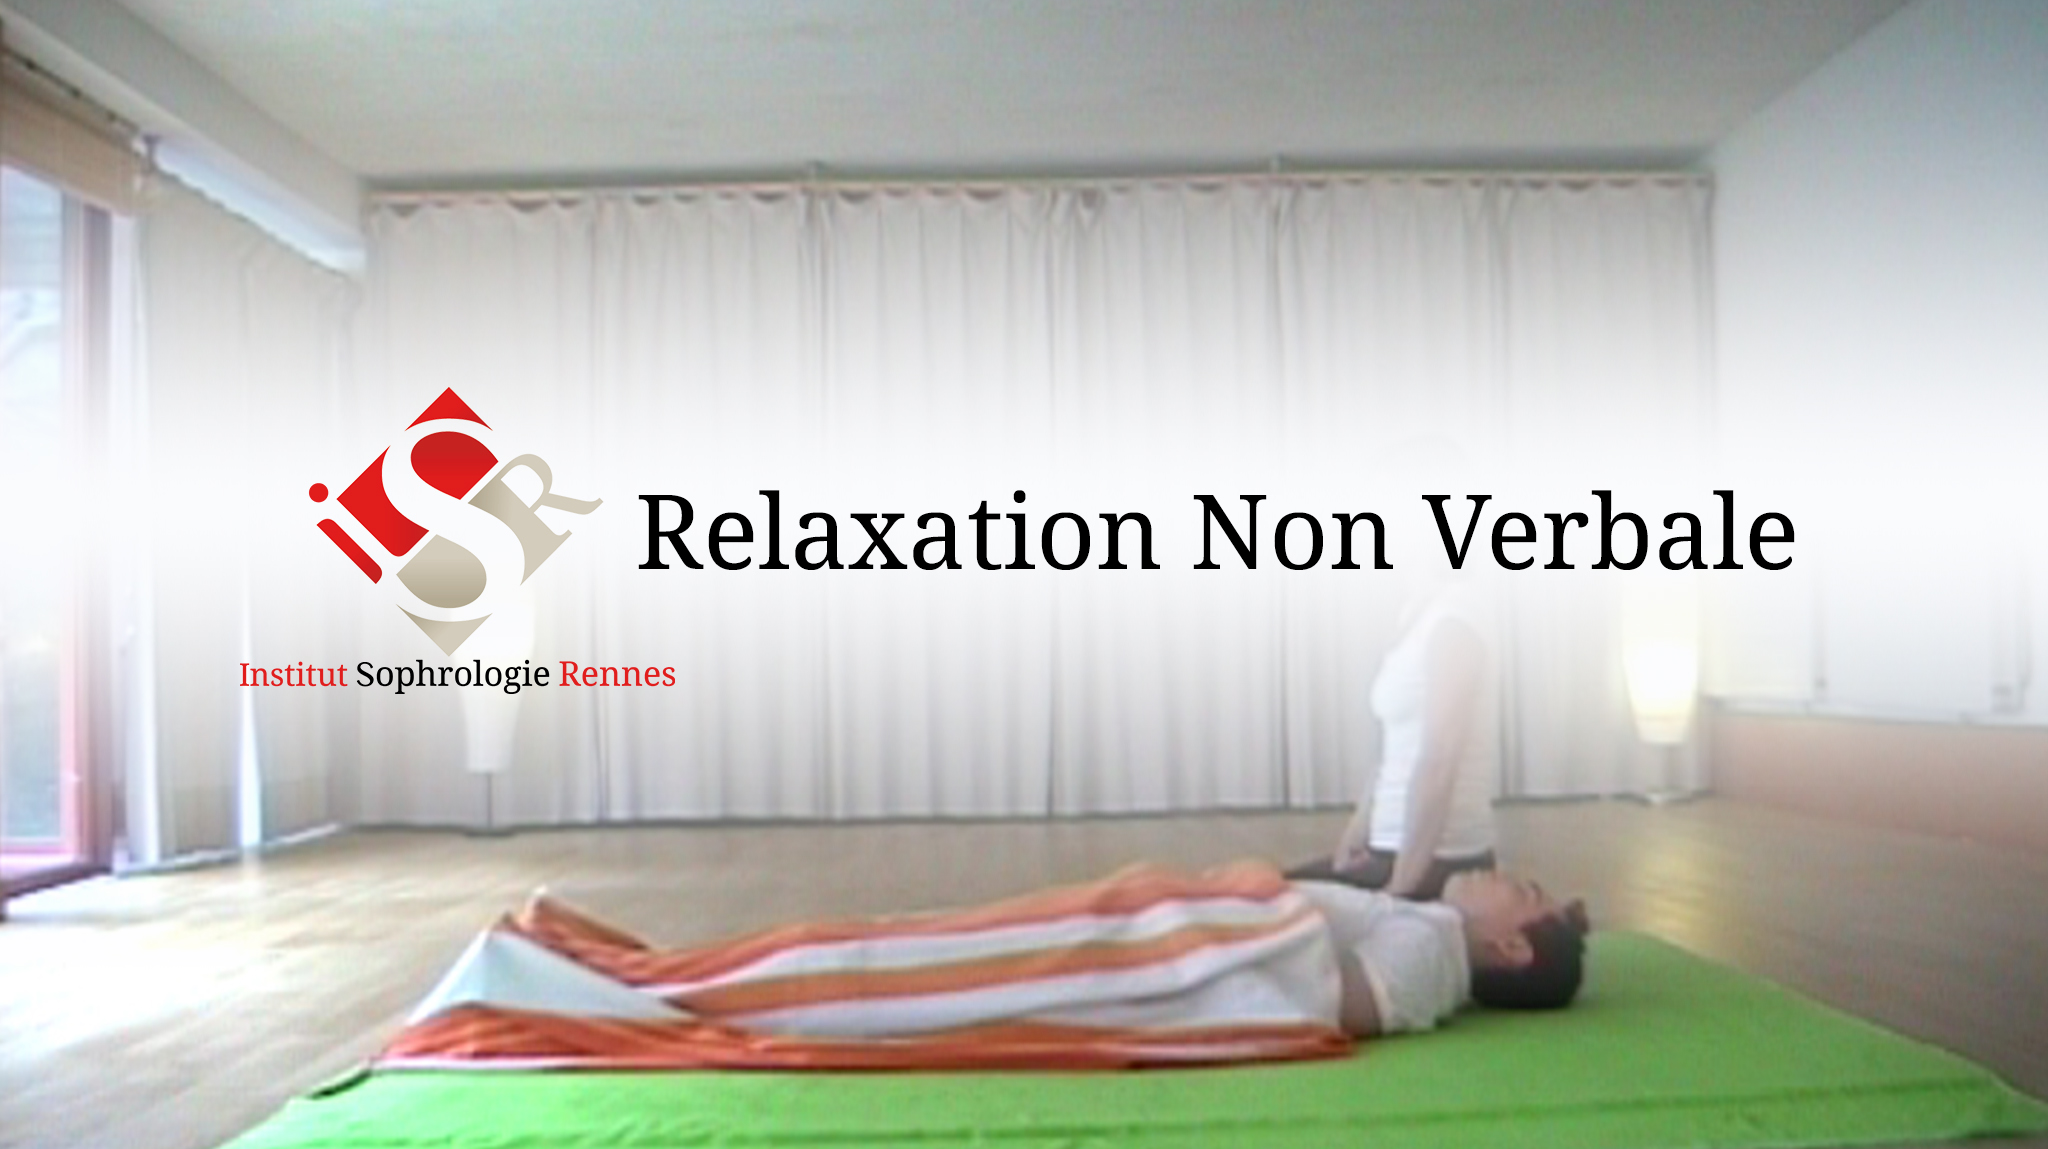 Relaxation Non Verbale - ISR